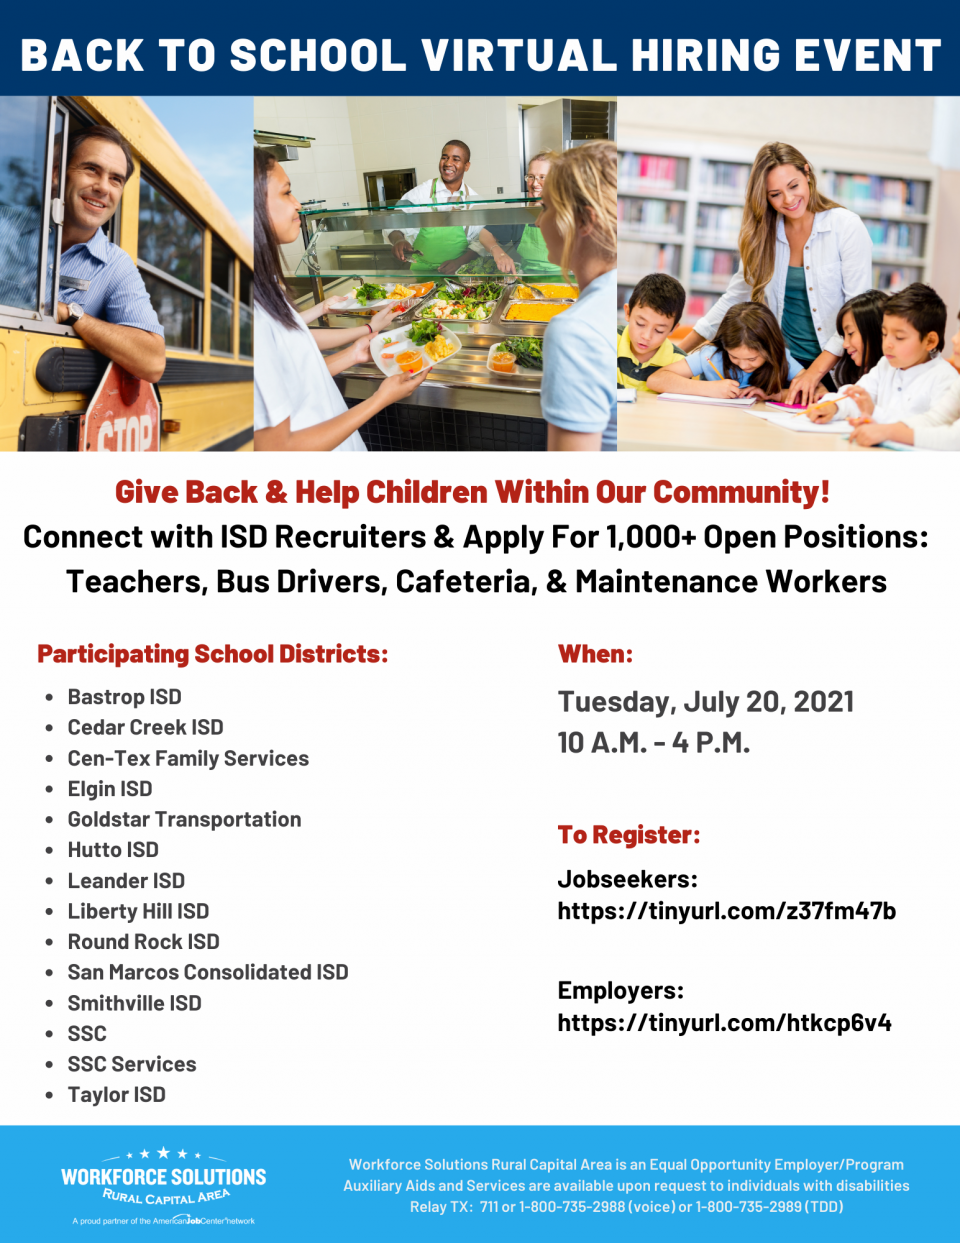 Support Your Community, Help Children, & Build a Career: Don't Miss the Back to School Virtual Hiring Event on Tuesday